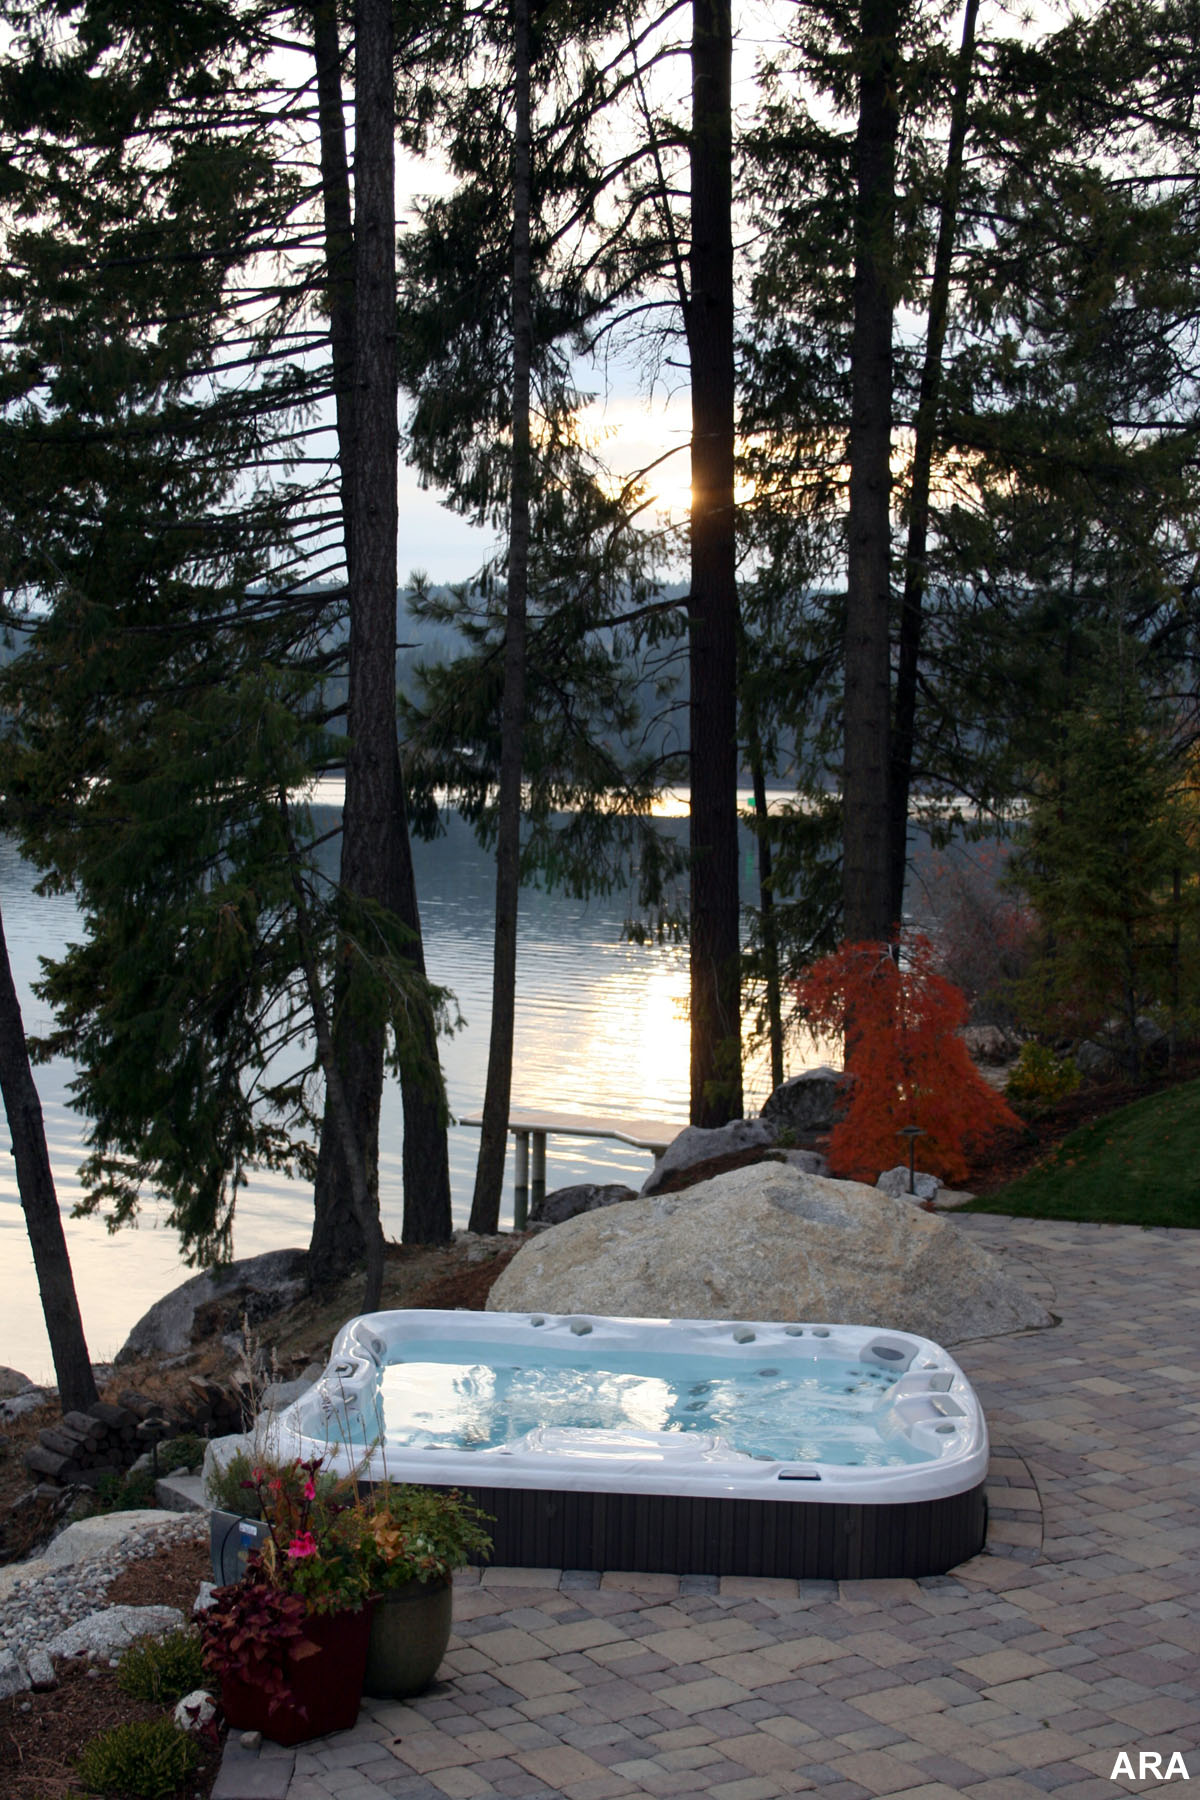 Backyard Jacuzzi Landscaping : Backyard Landscaping Changes ?Blah? to ?Aha? With Hot Tubs